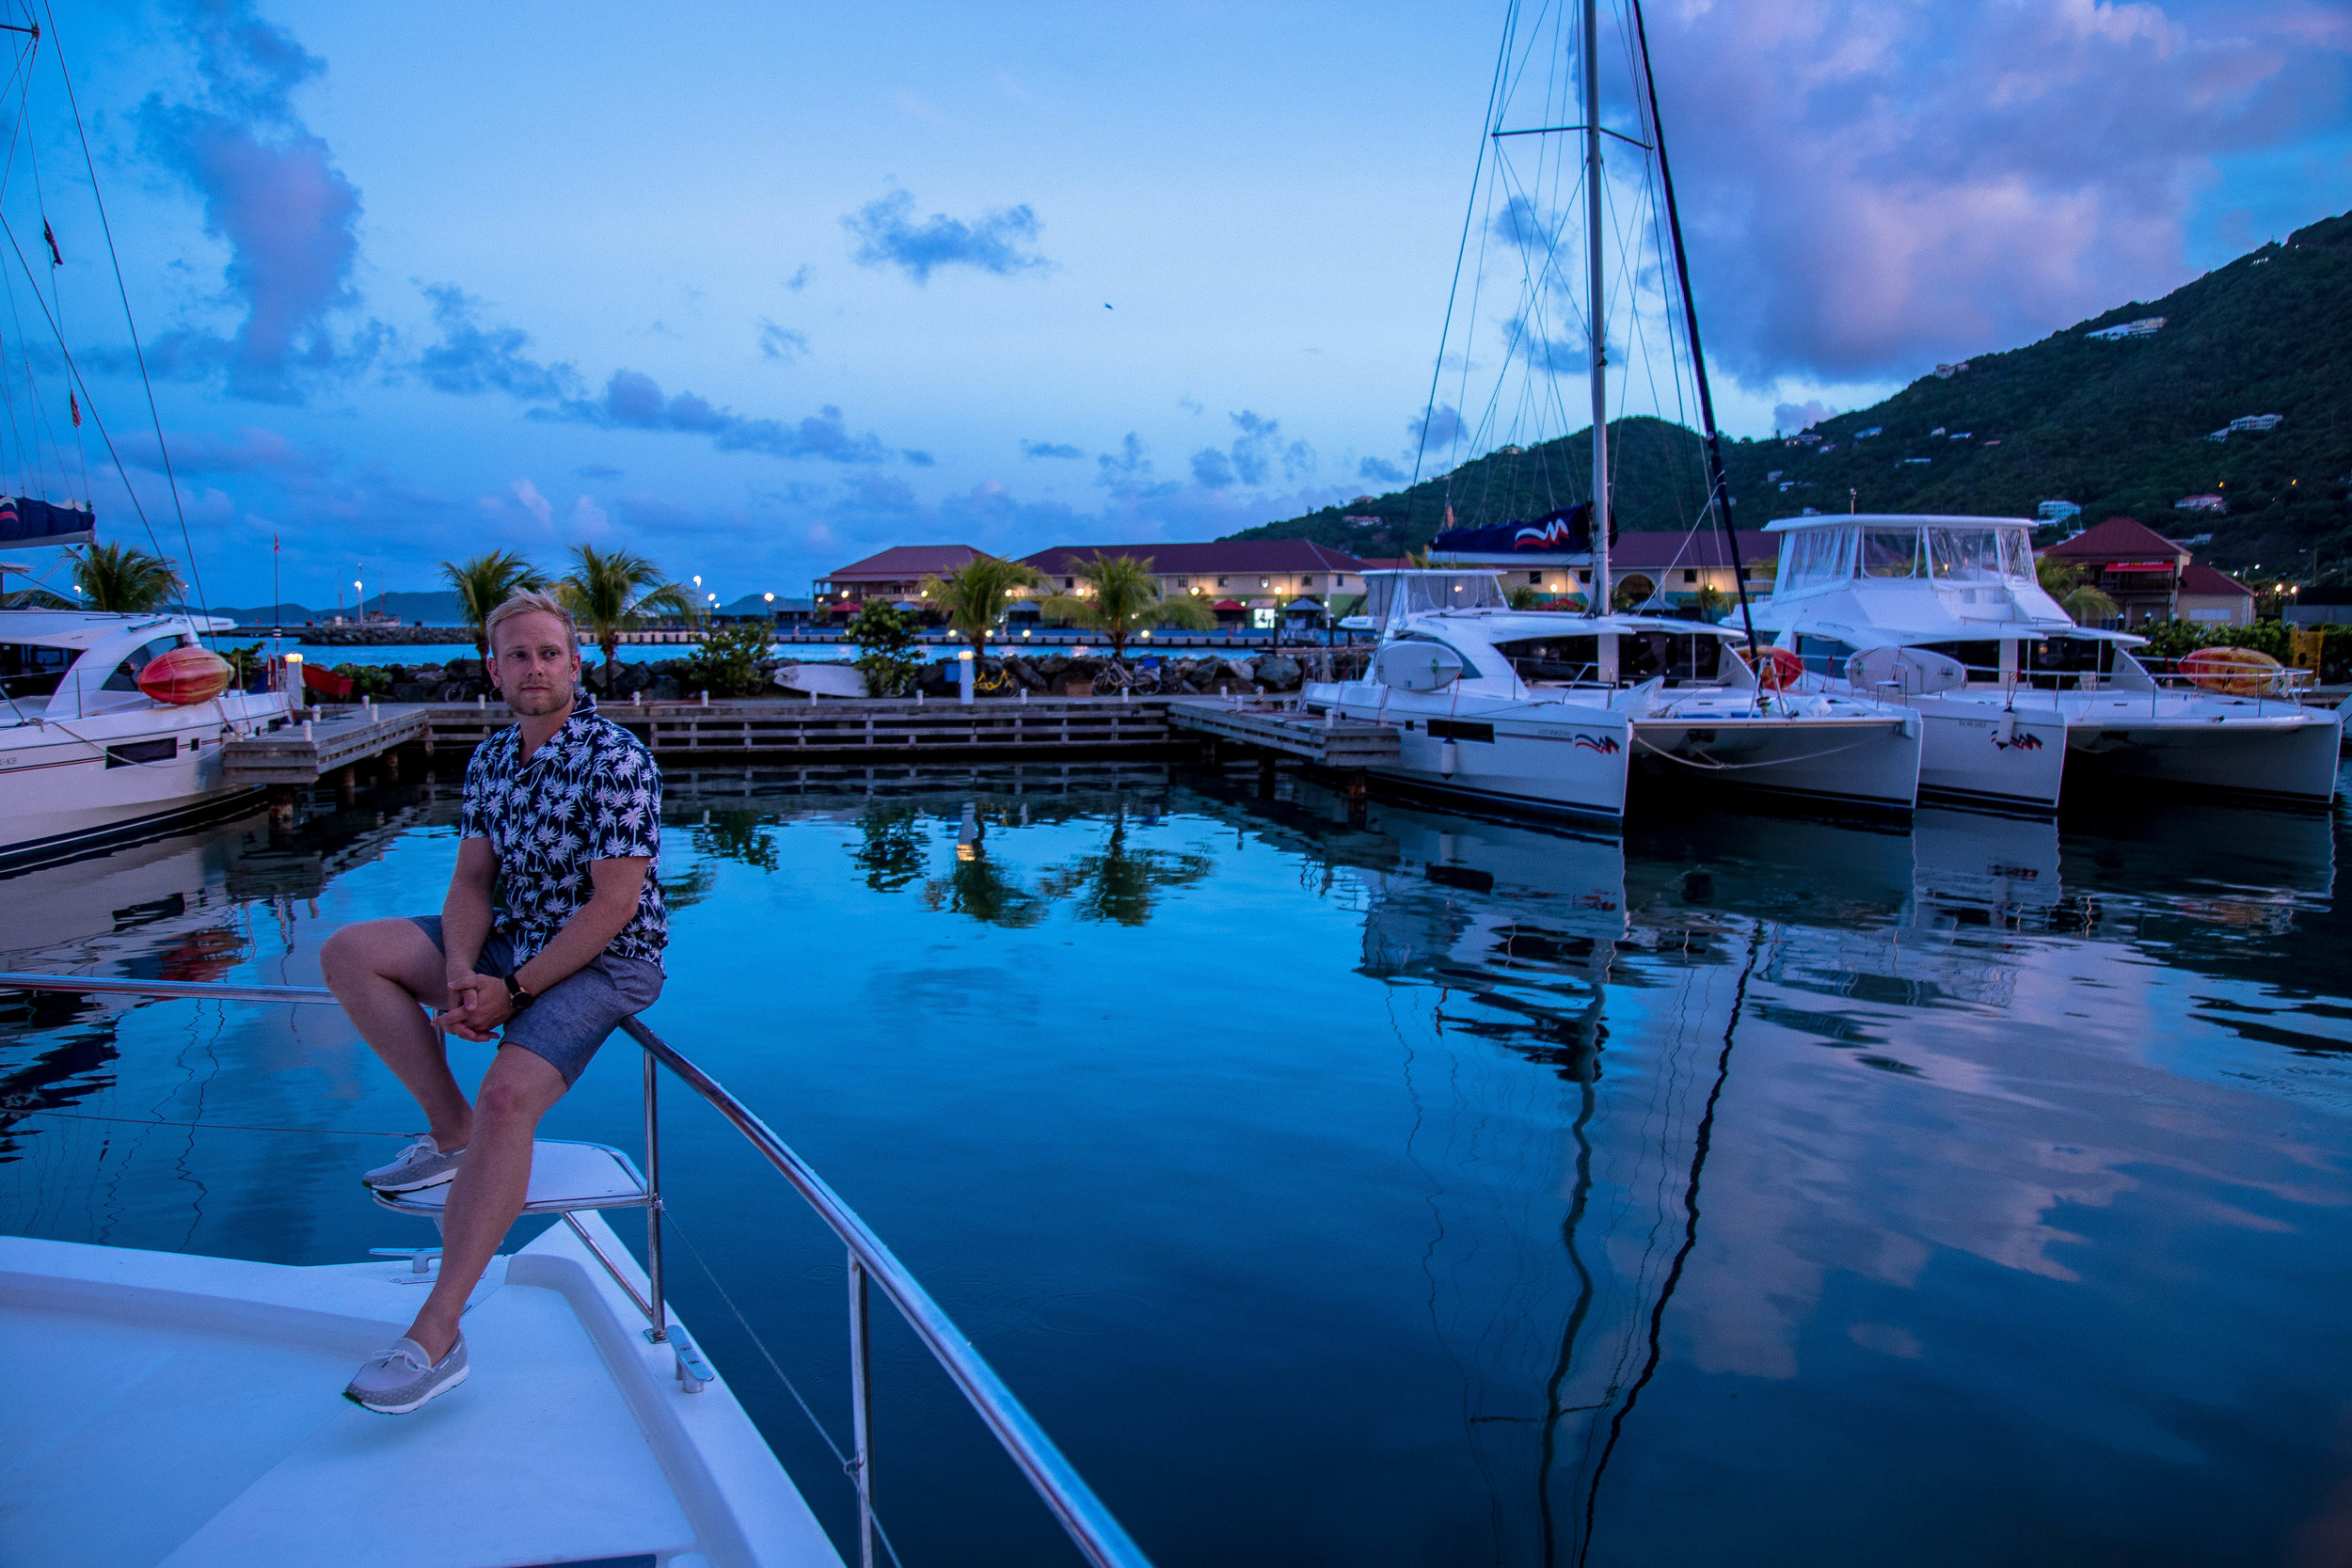 Our last night at the Moorings Marina.